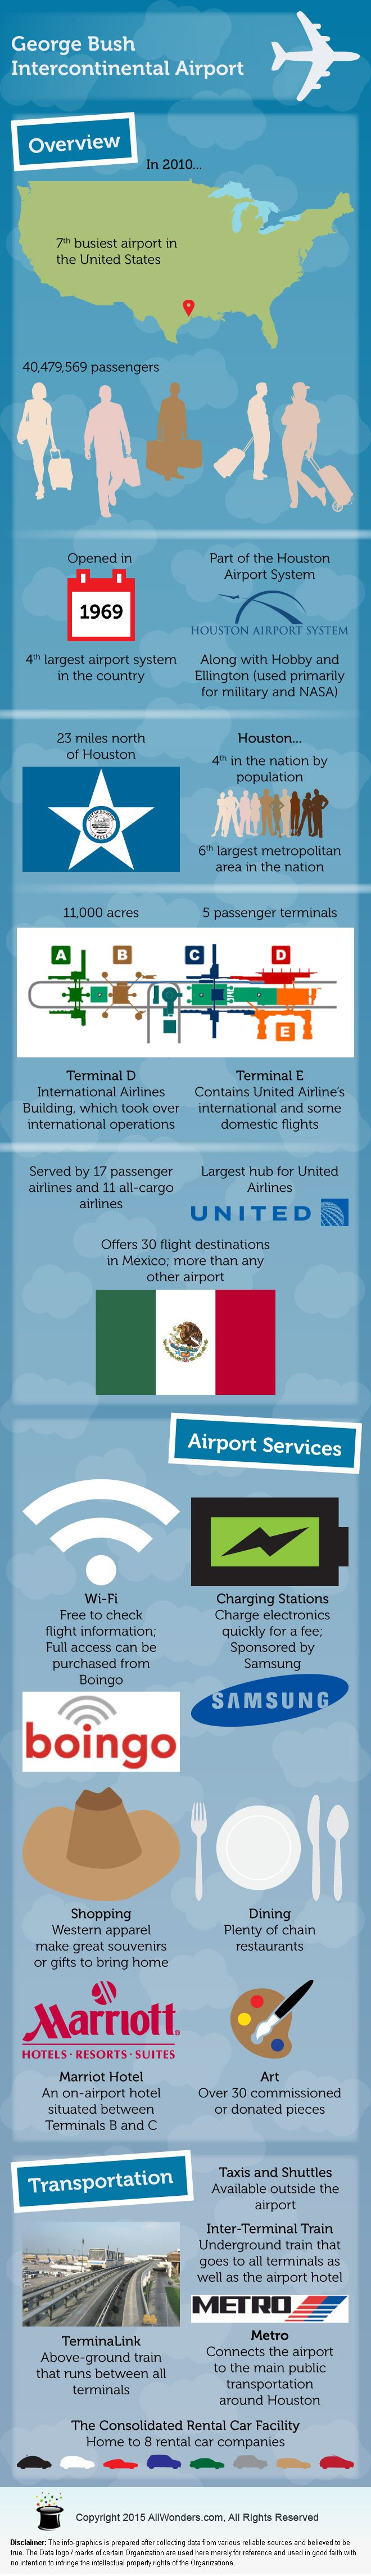 George Bush Intercontinental Airport Infographic